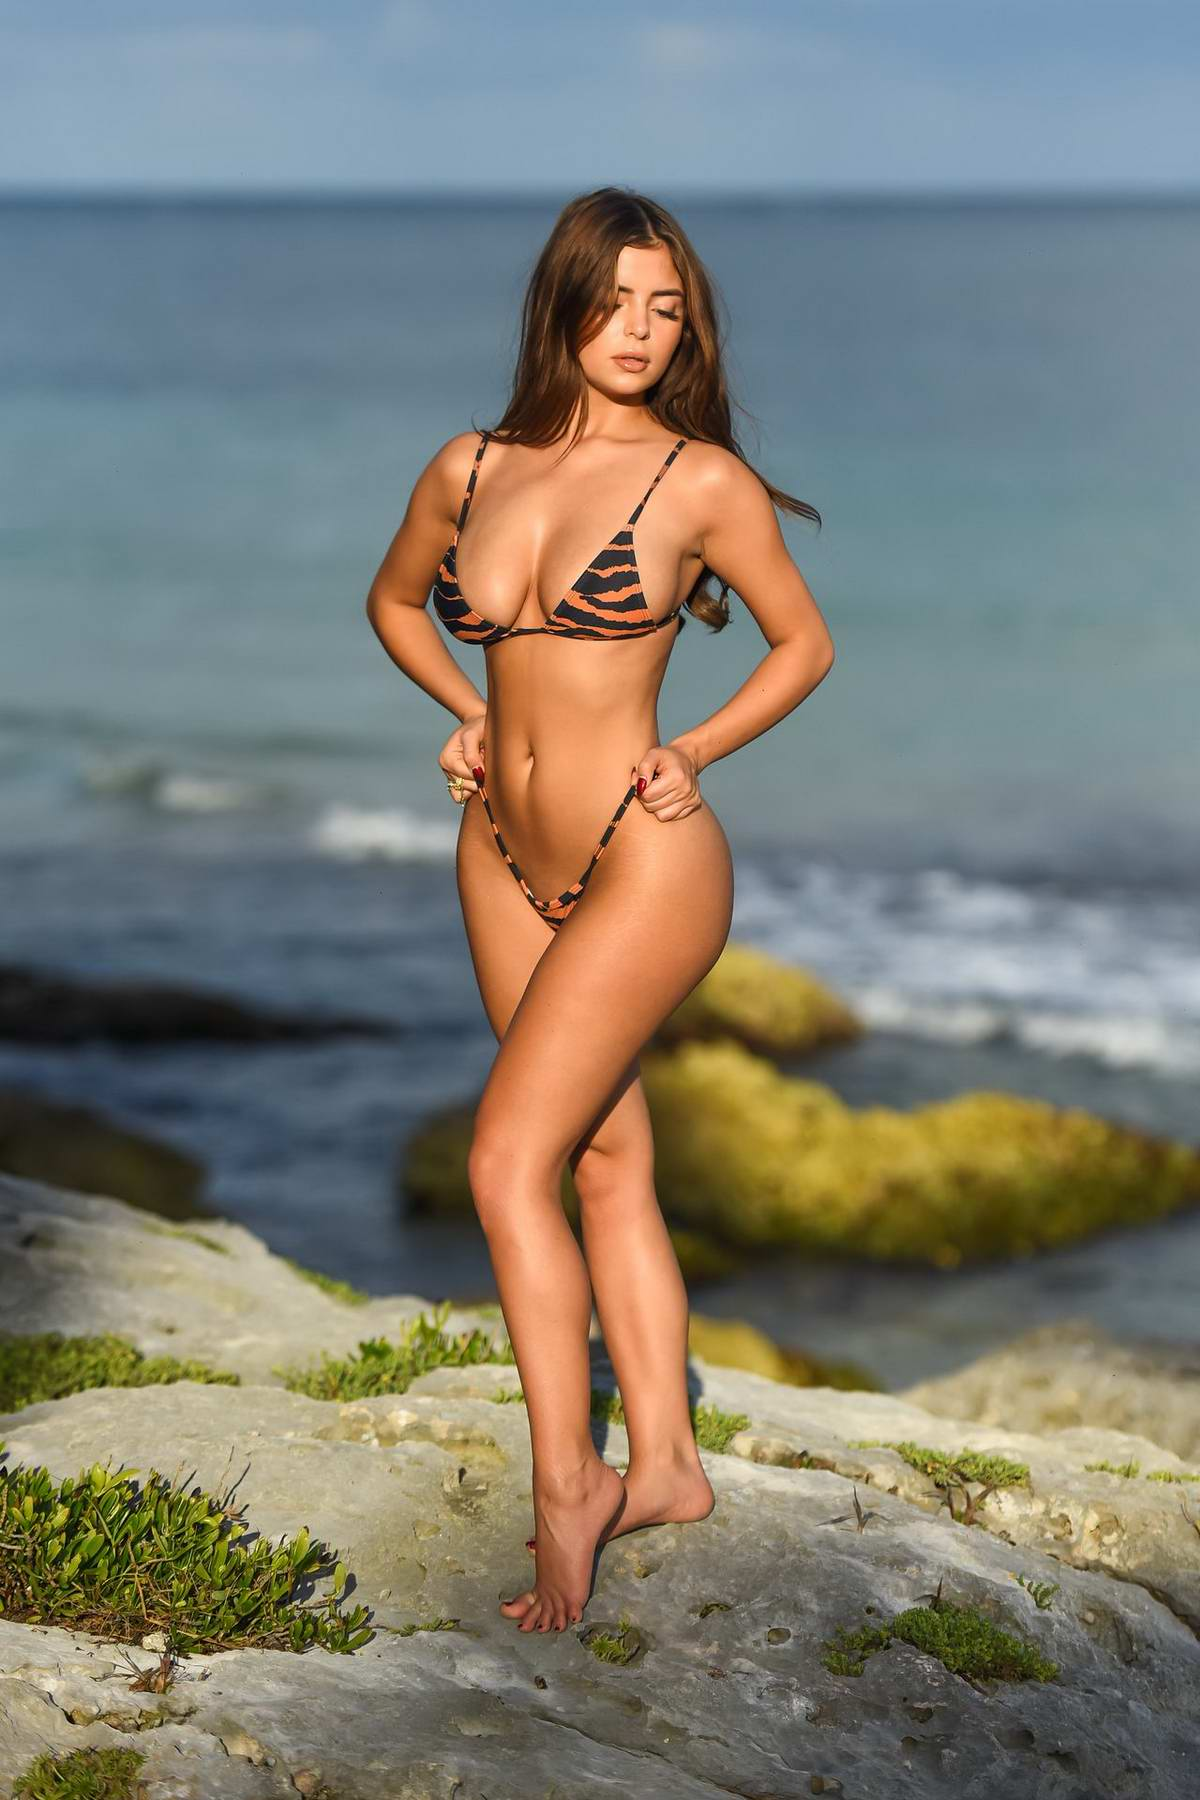 Demi Rose poses in an animal print bikini during photoshoot in Tulum, Mexico